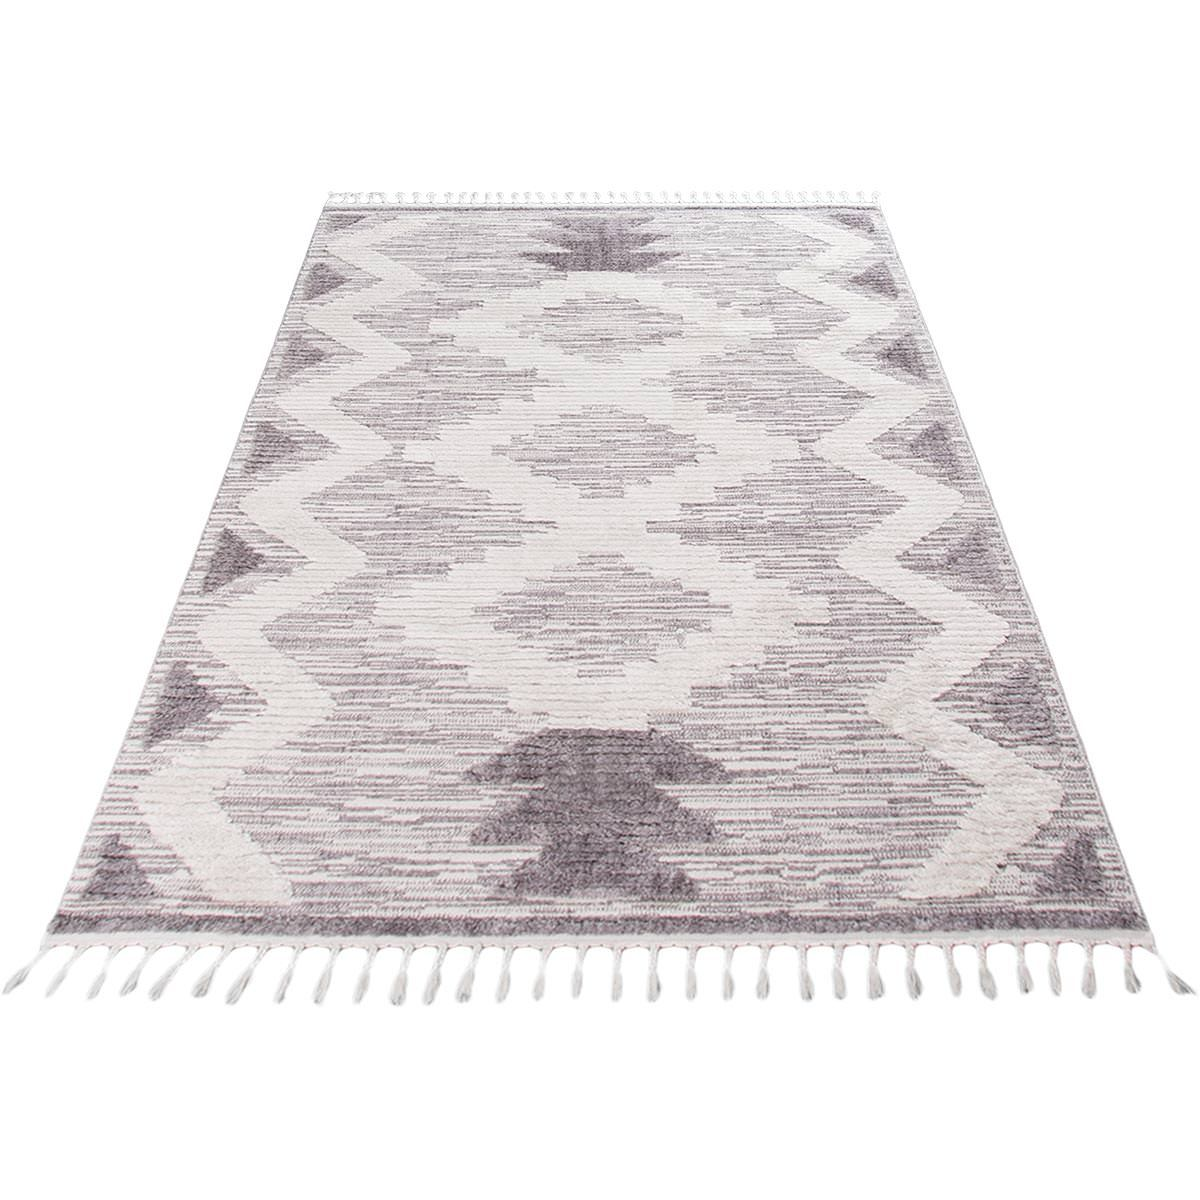 Atlas Rug 06 Grey/Cream 6